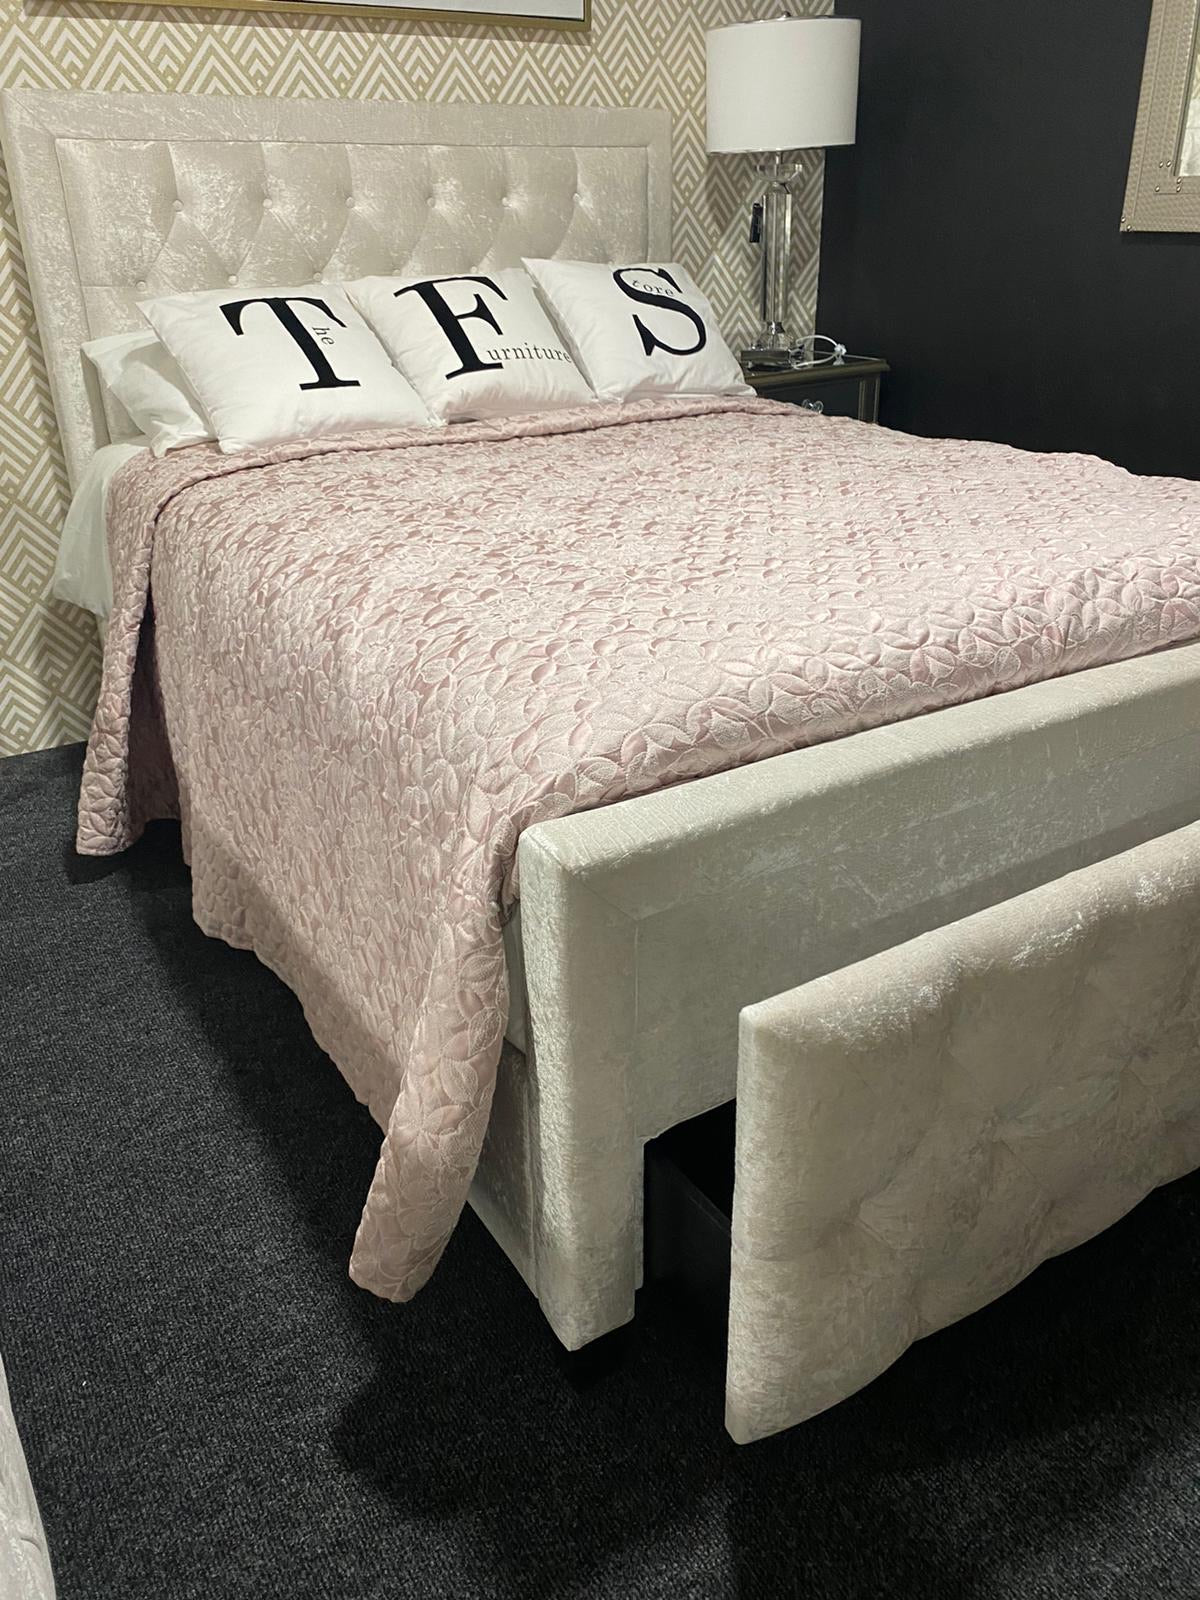 Carolina Storage Bed Champagne Double. SOLD OUT